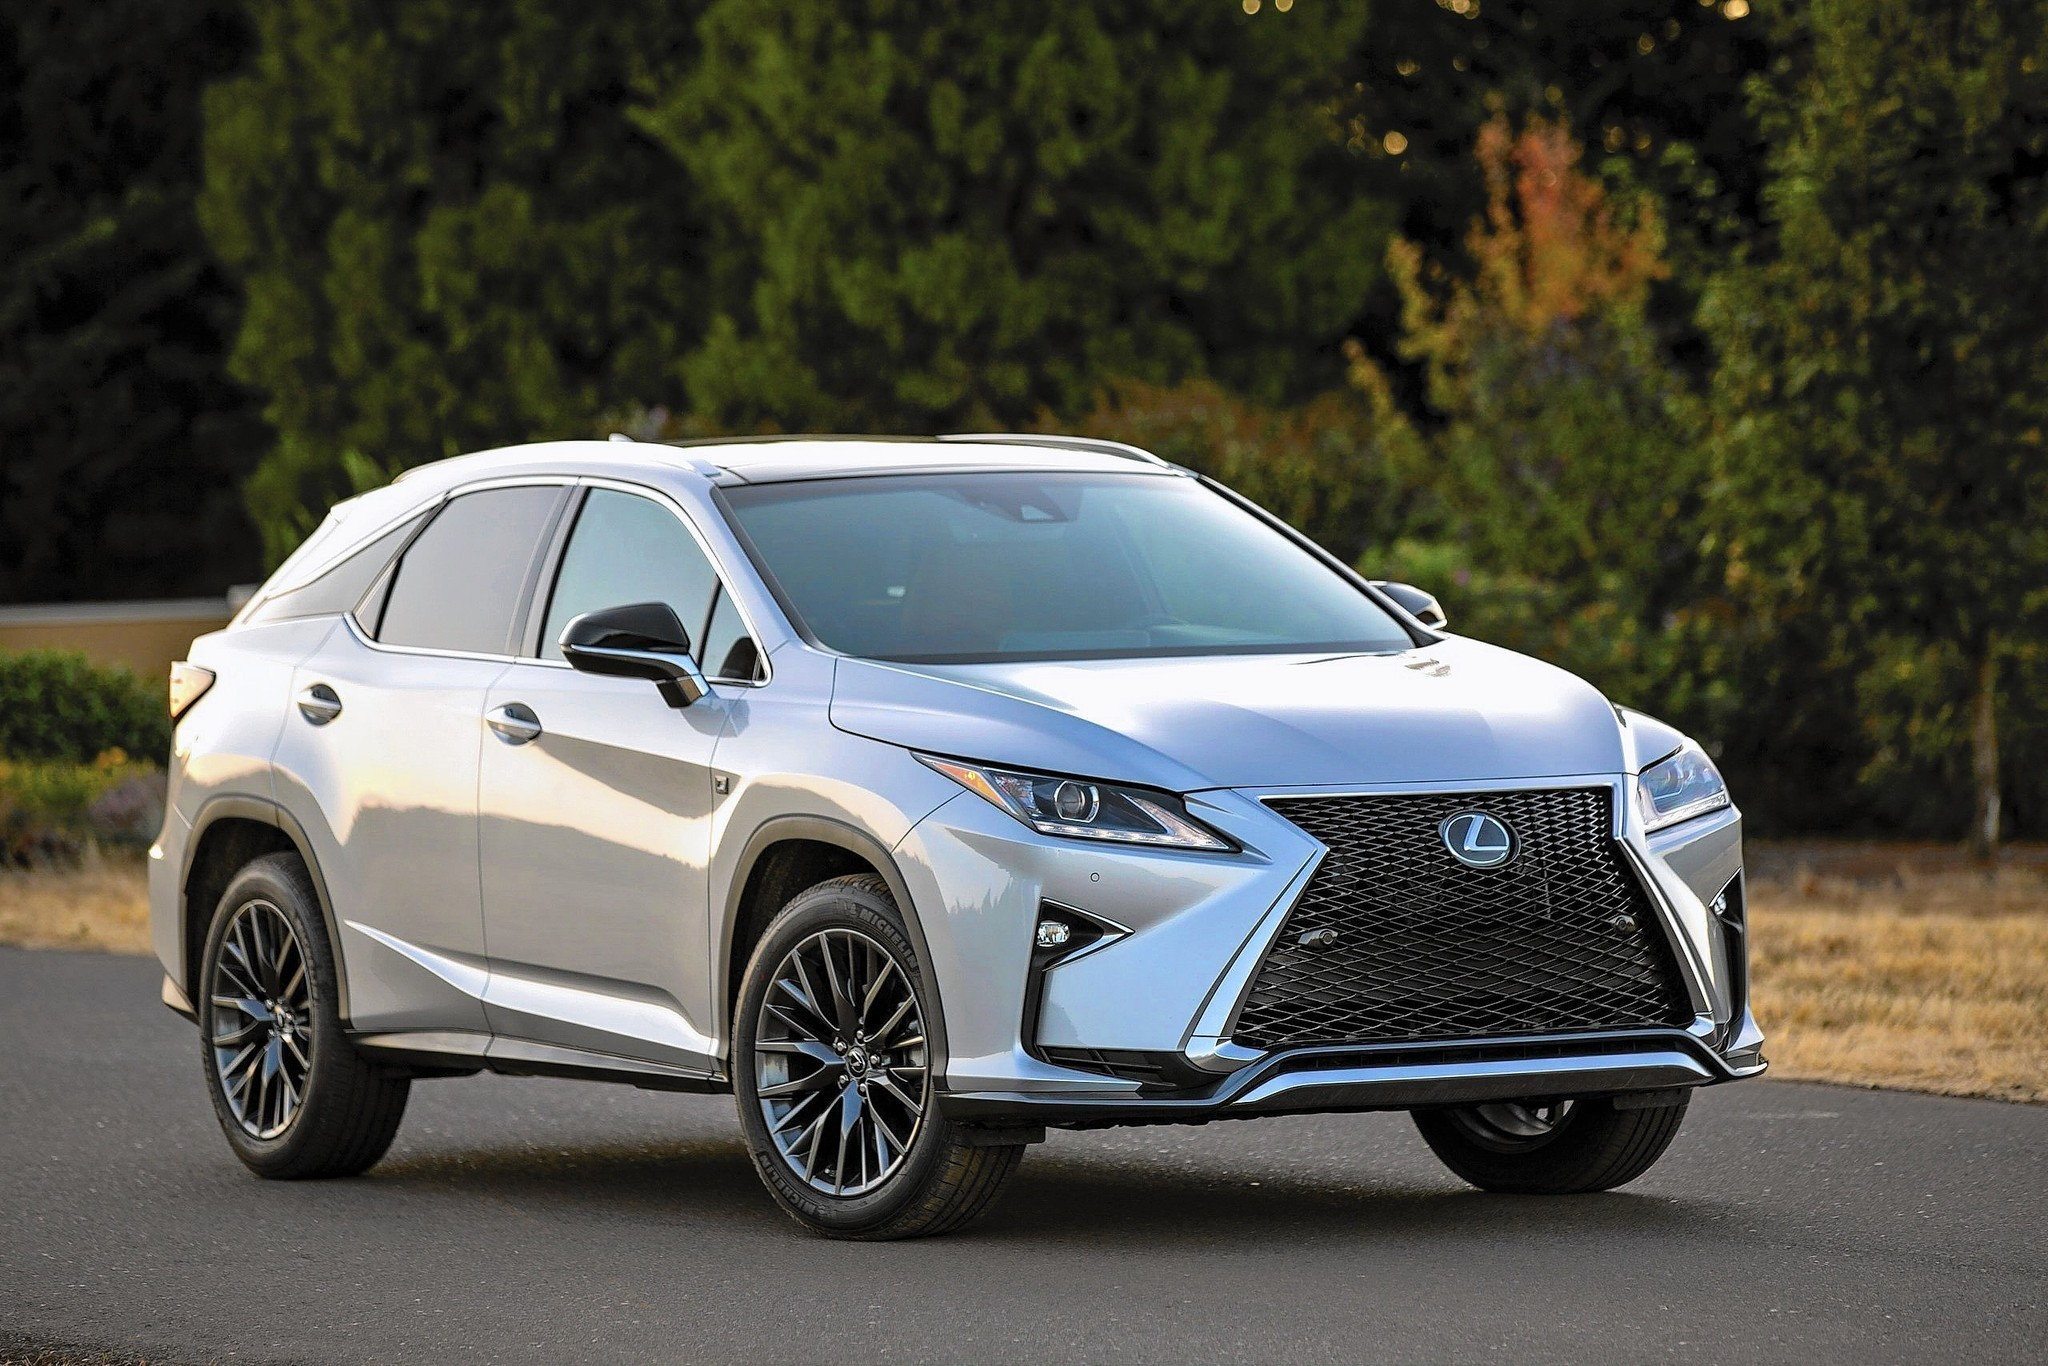 luxurious lexus rx makes cheaper nx look bad in comparison la times. Black Bedroom Furniture Sets. Home Design Ideas